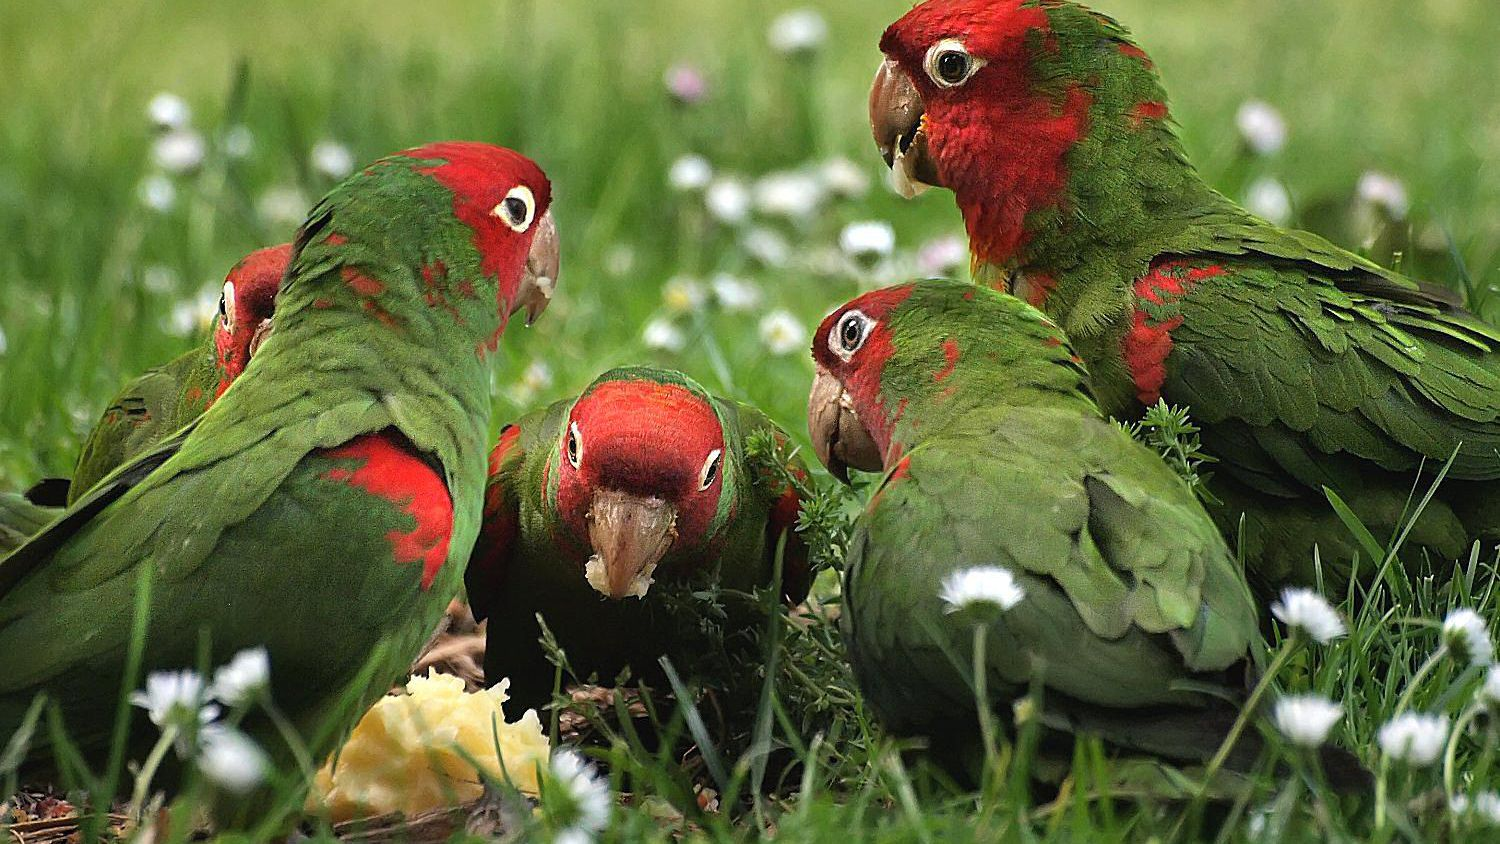 How To Attract Parrots To Your Yard